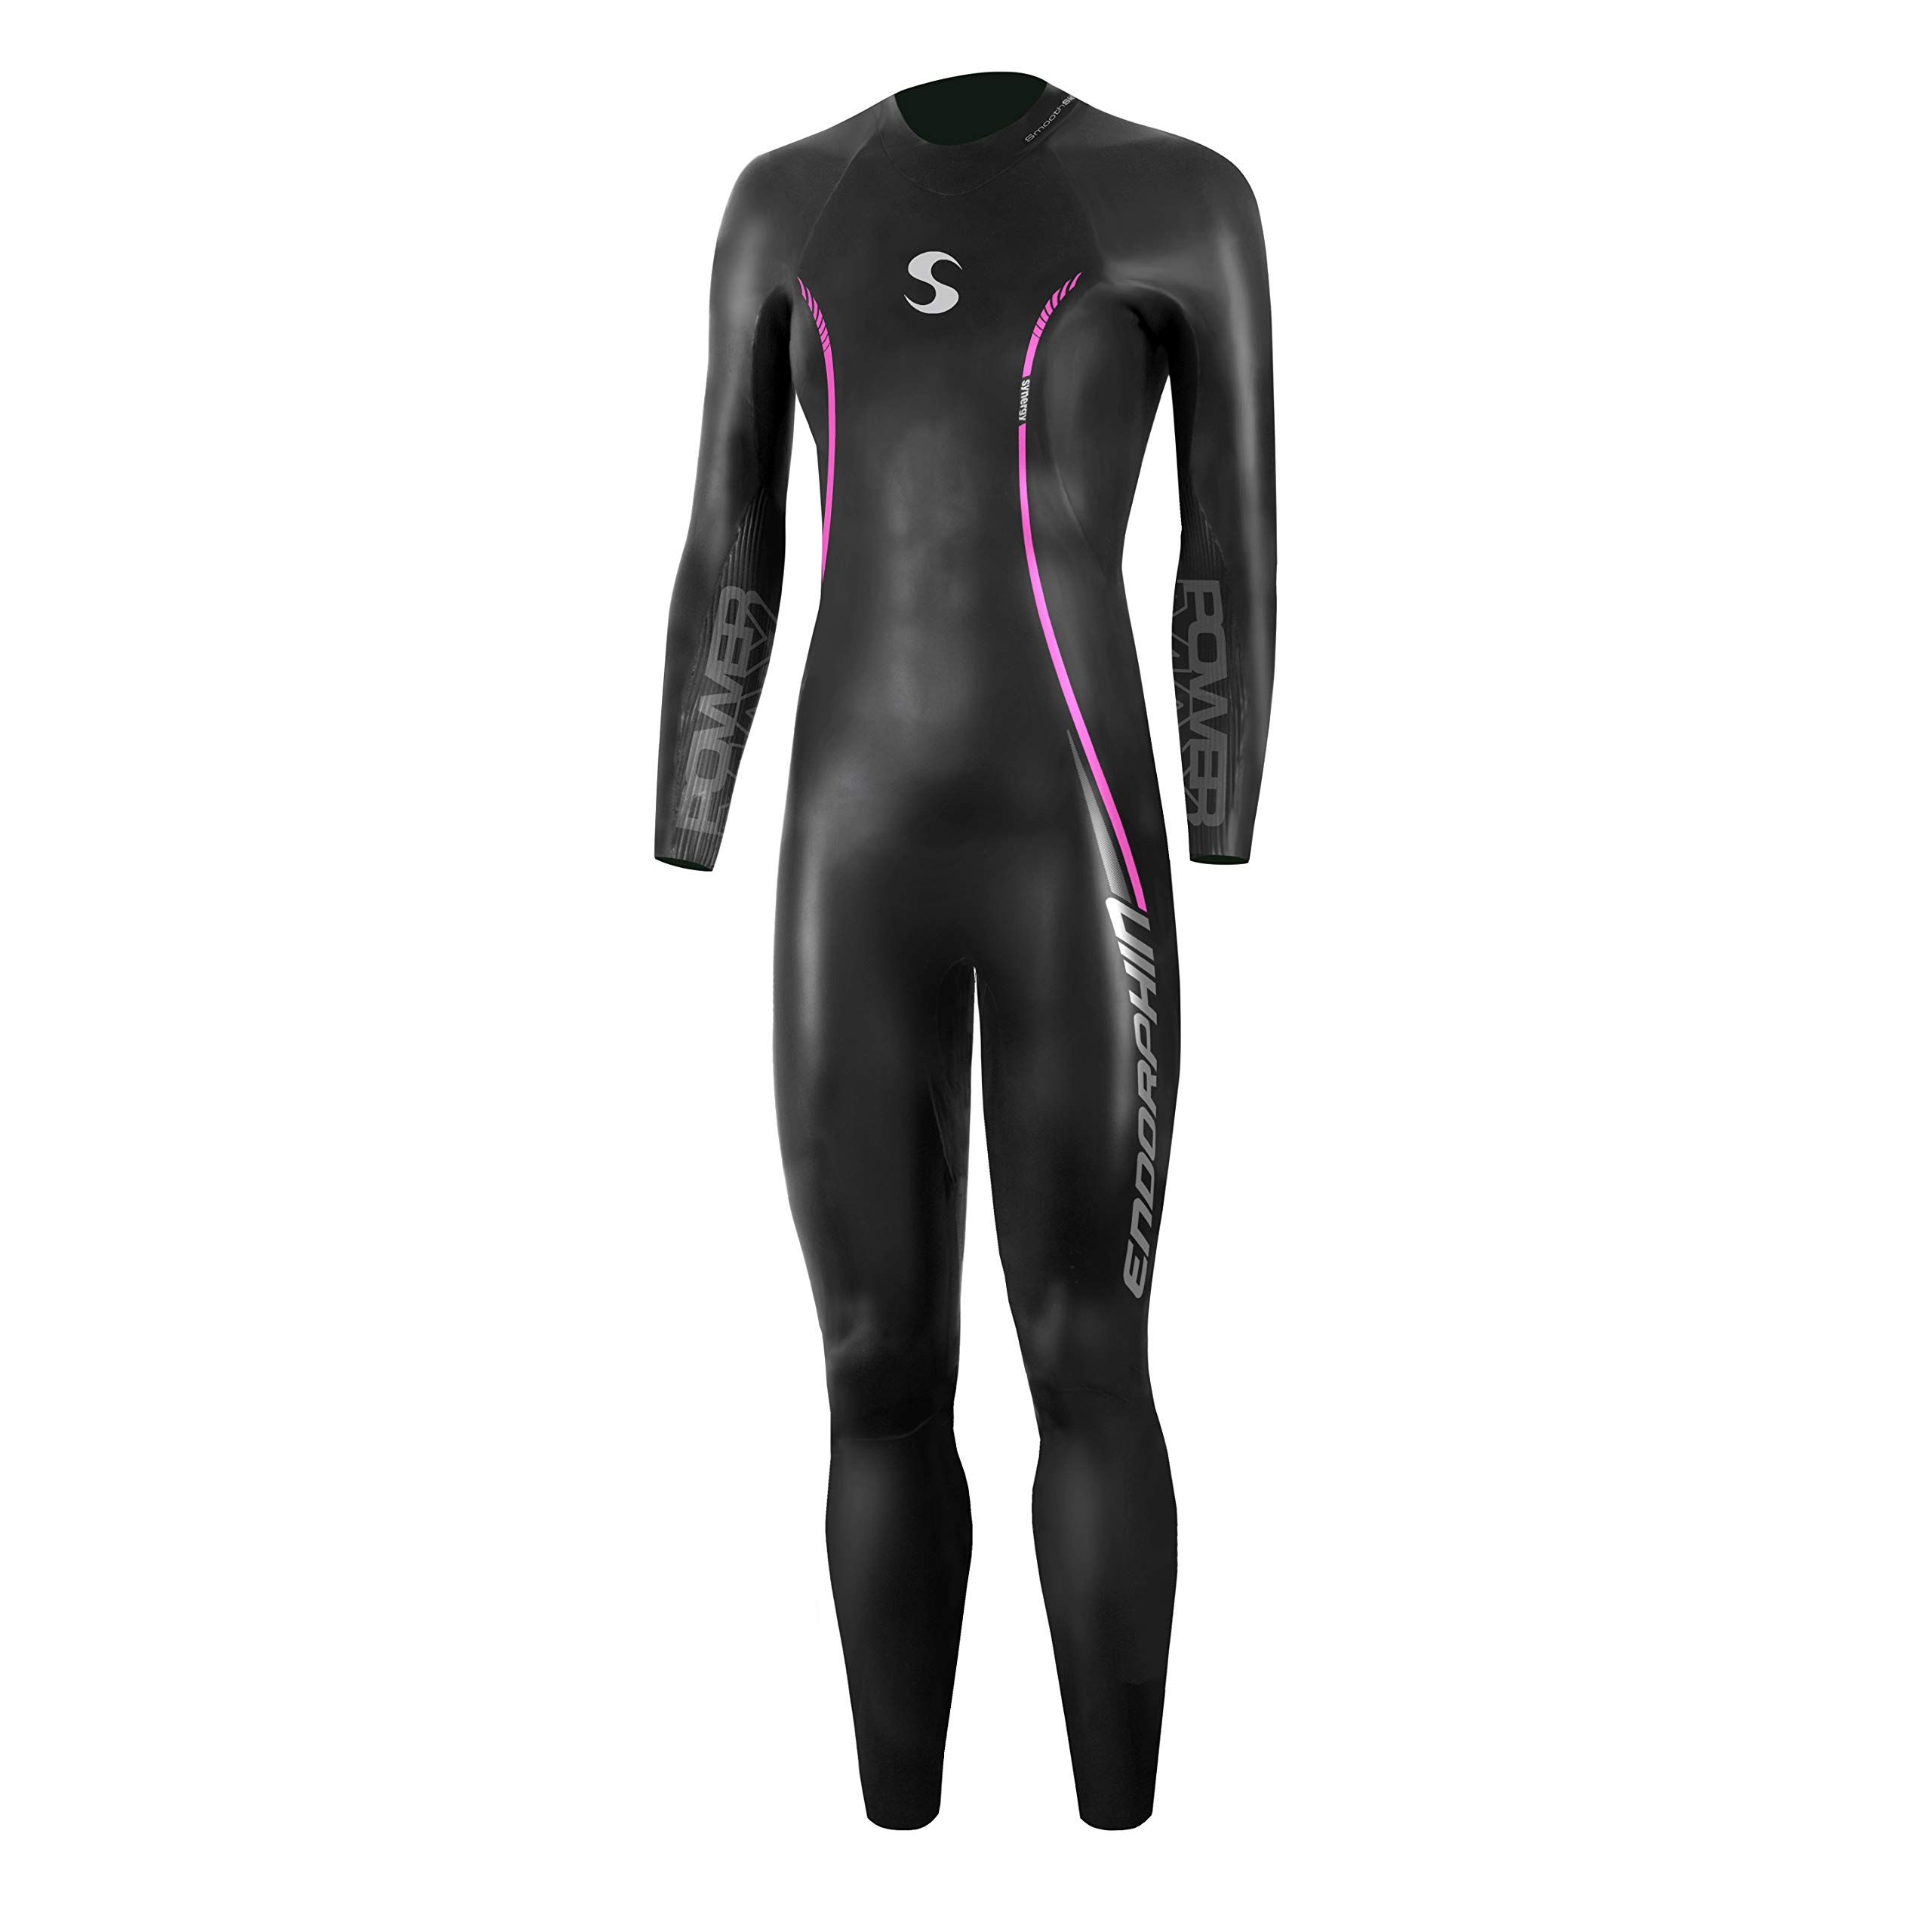 Synergy Endorphin Women's Full Sleeve Triathlon Wetsuit (P2) by Synergy